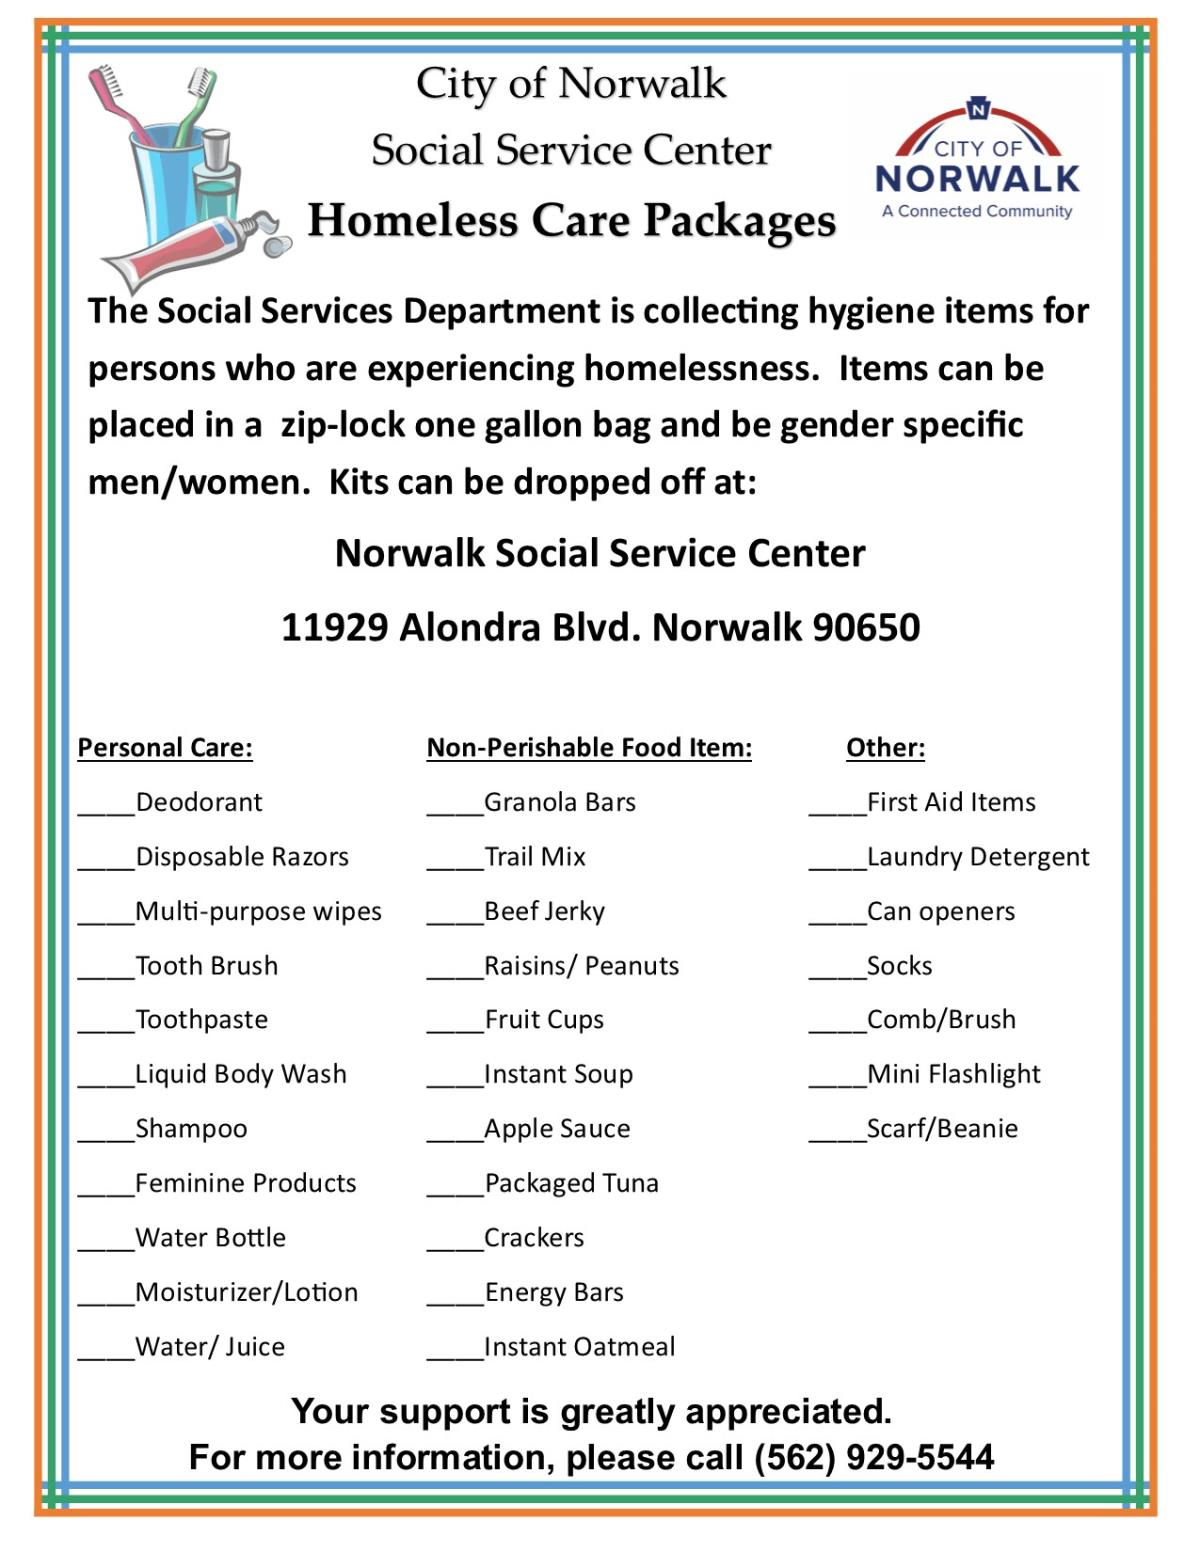 Homeless care package flier